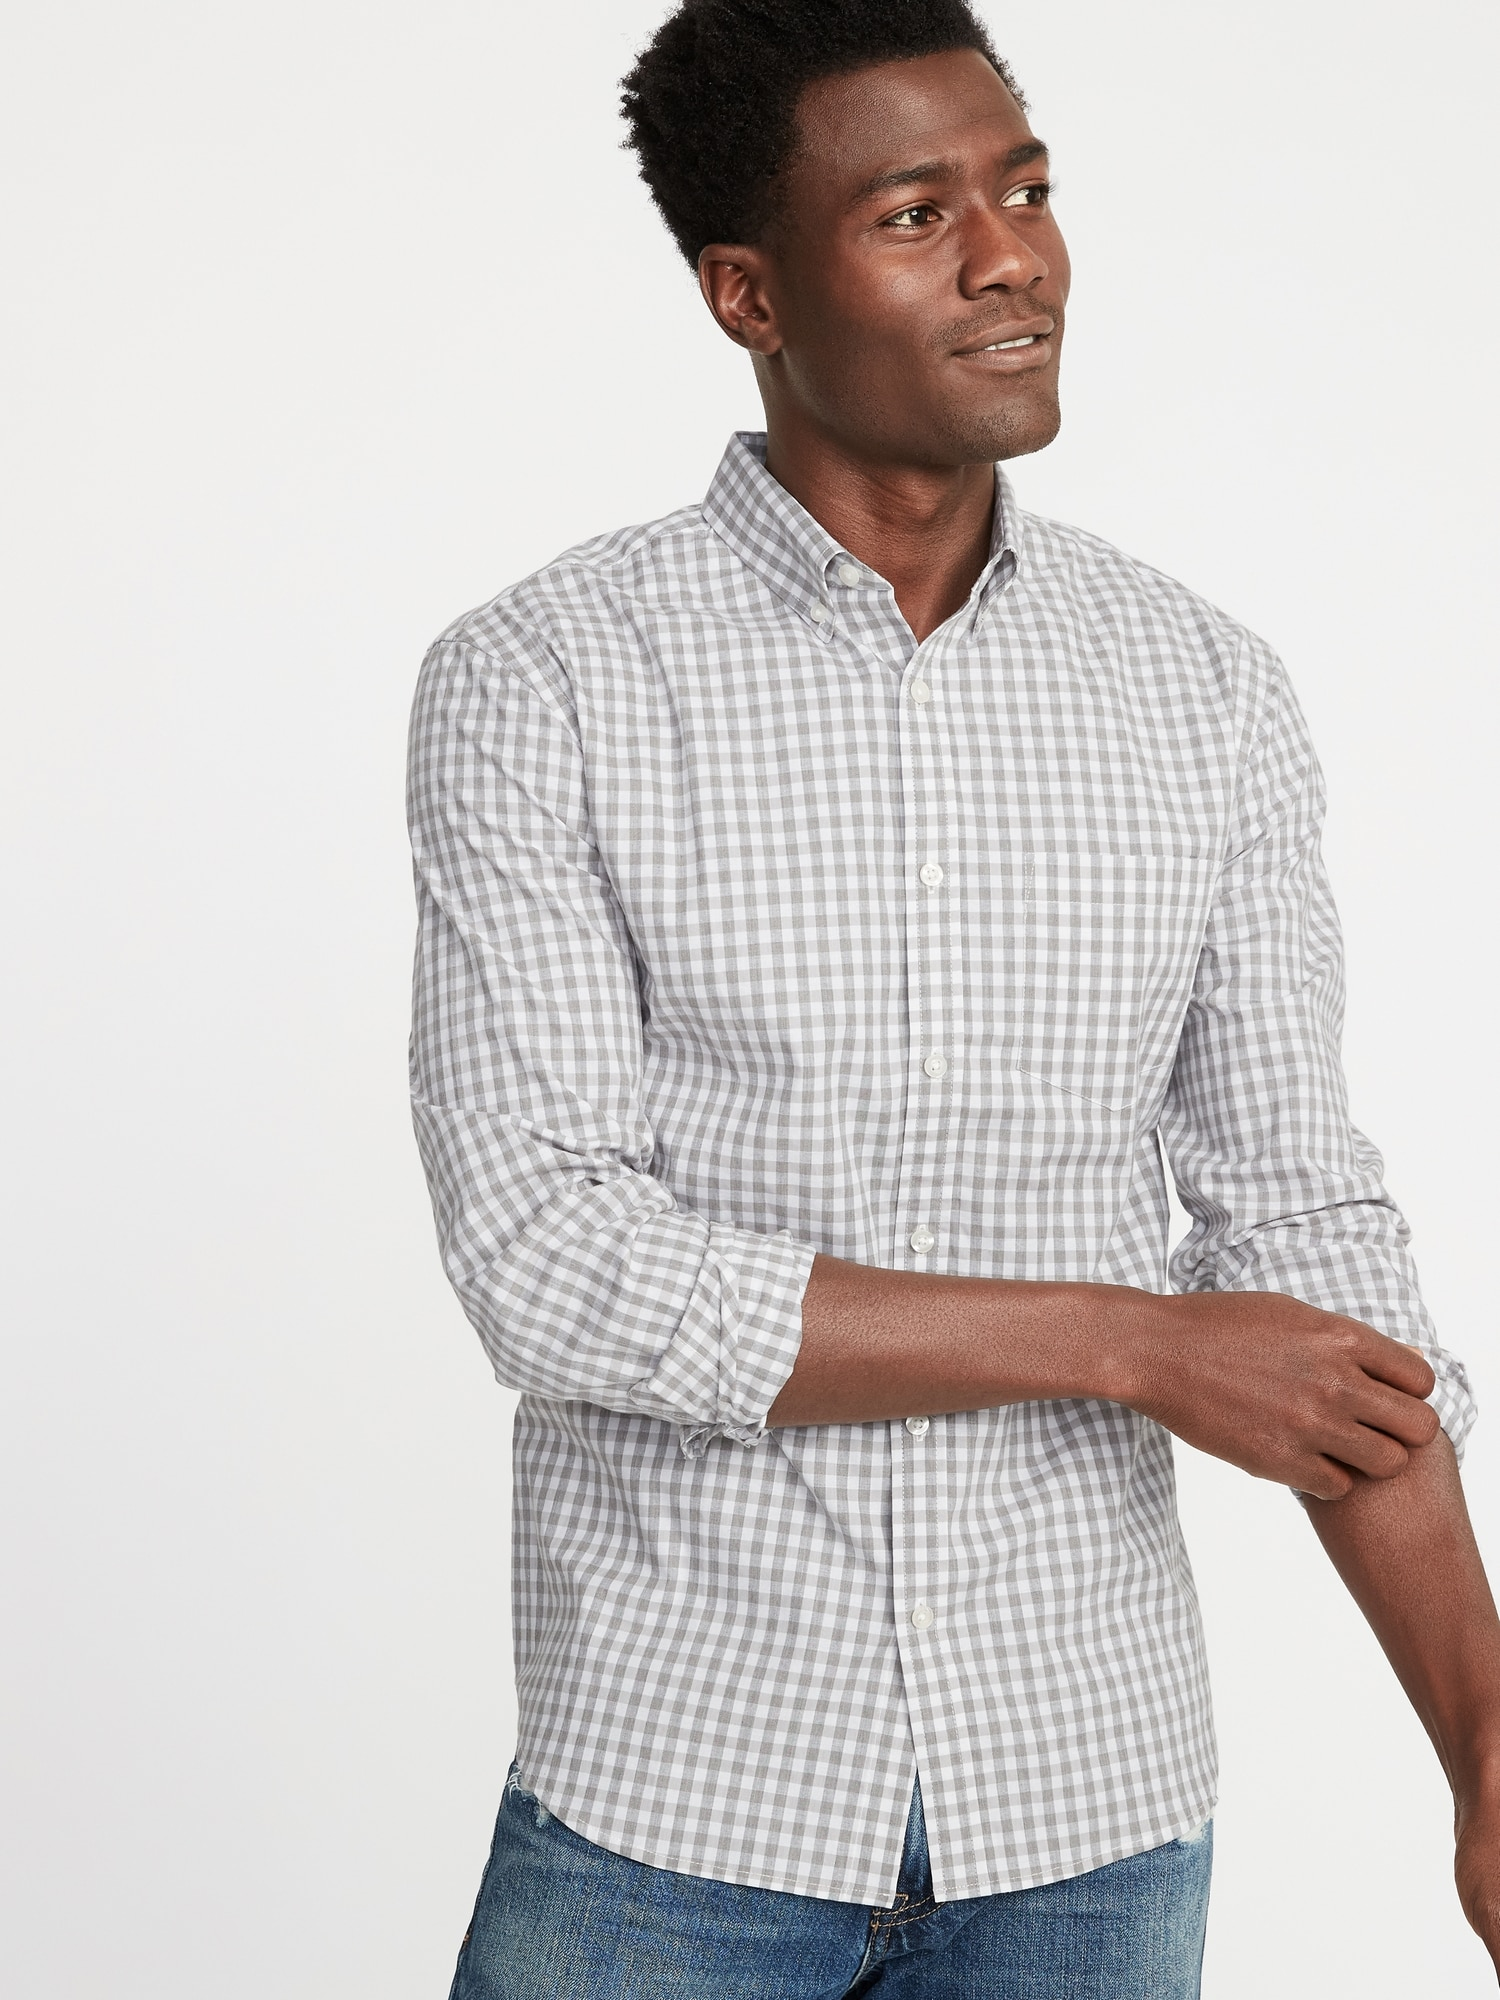 db002153 Slim-Fit Built-In Flex Plaid Everyday Shirt for Men | Old Navy